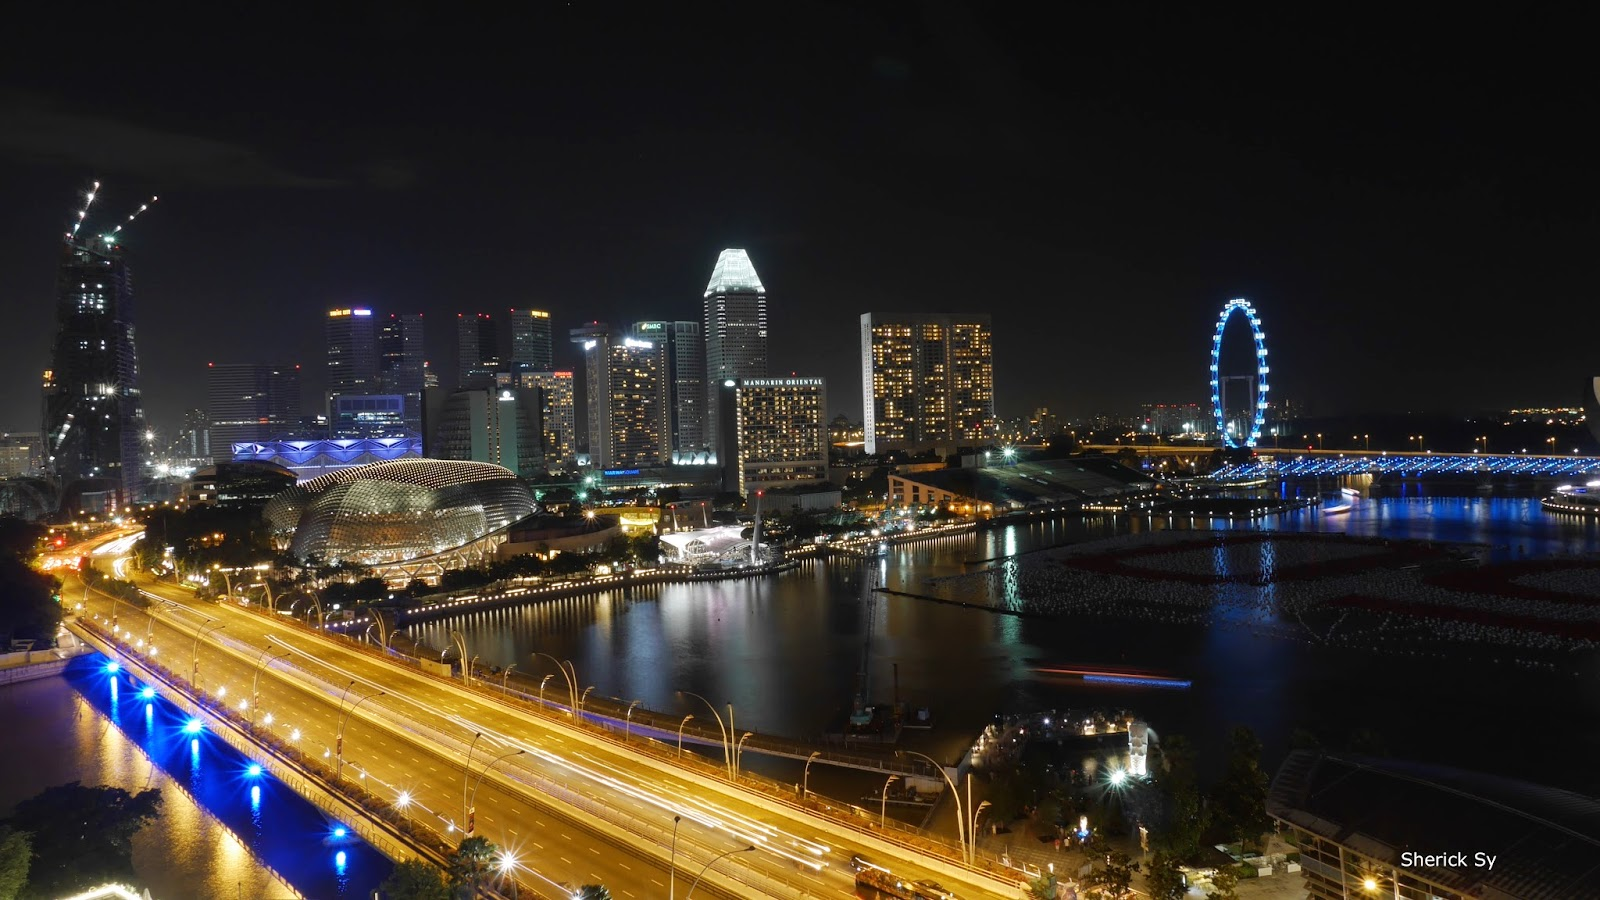 Esplanade Bridge at Night, Singapore